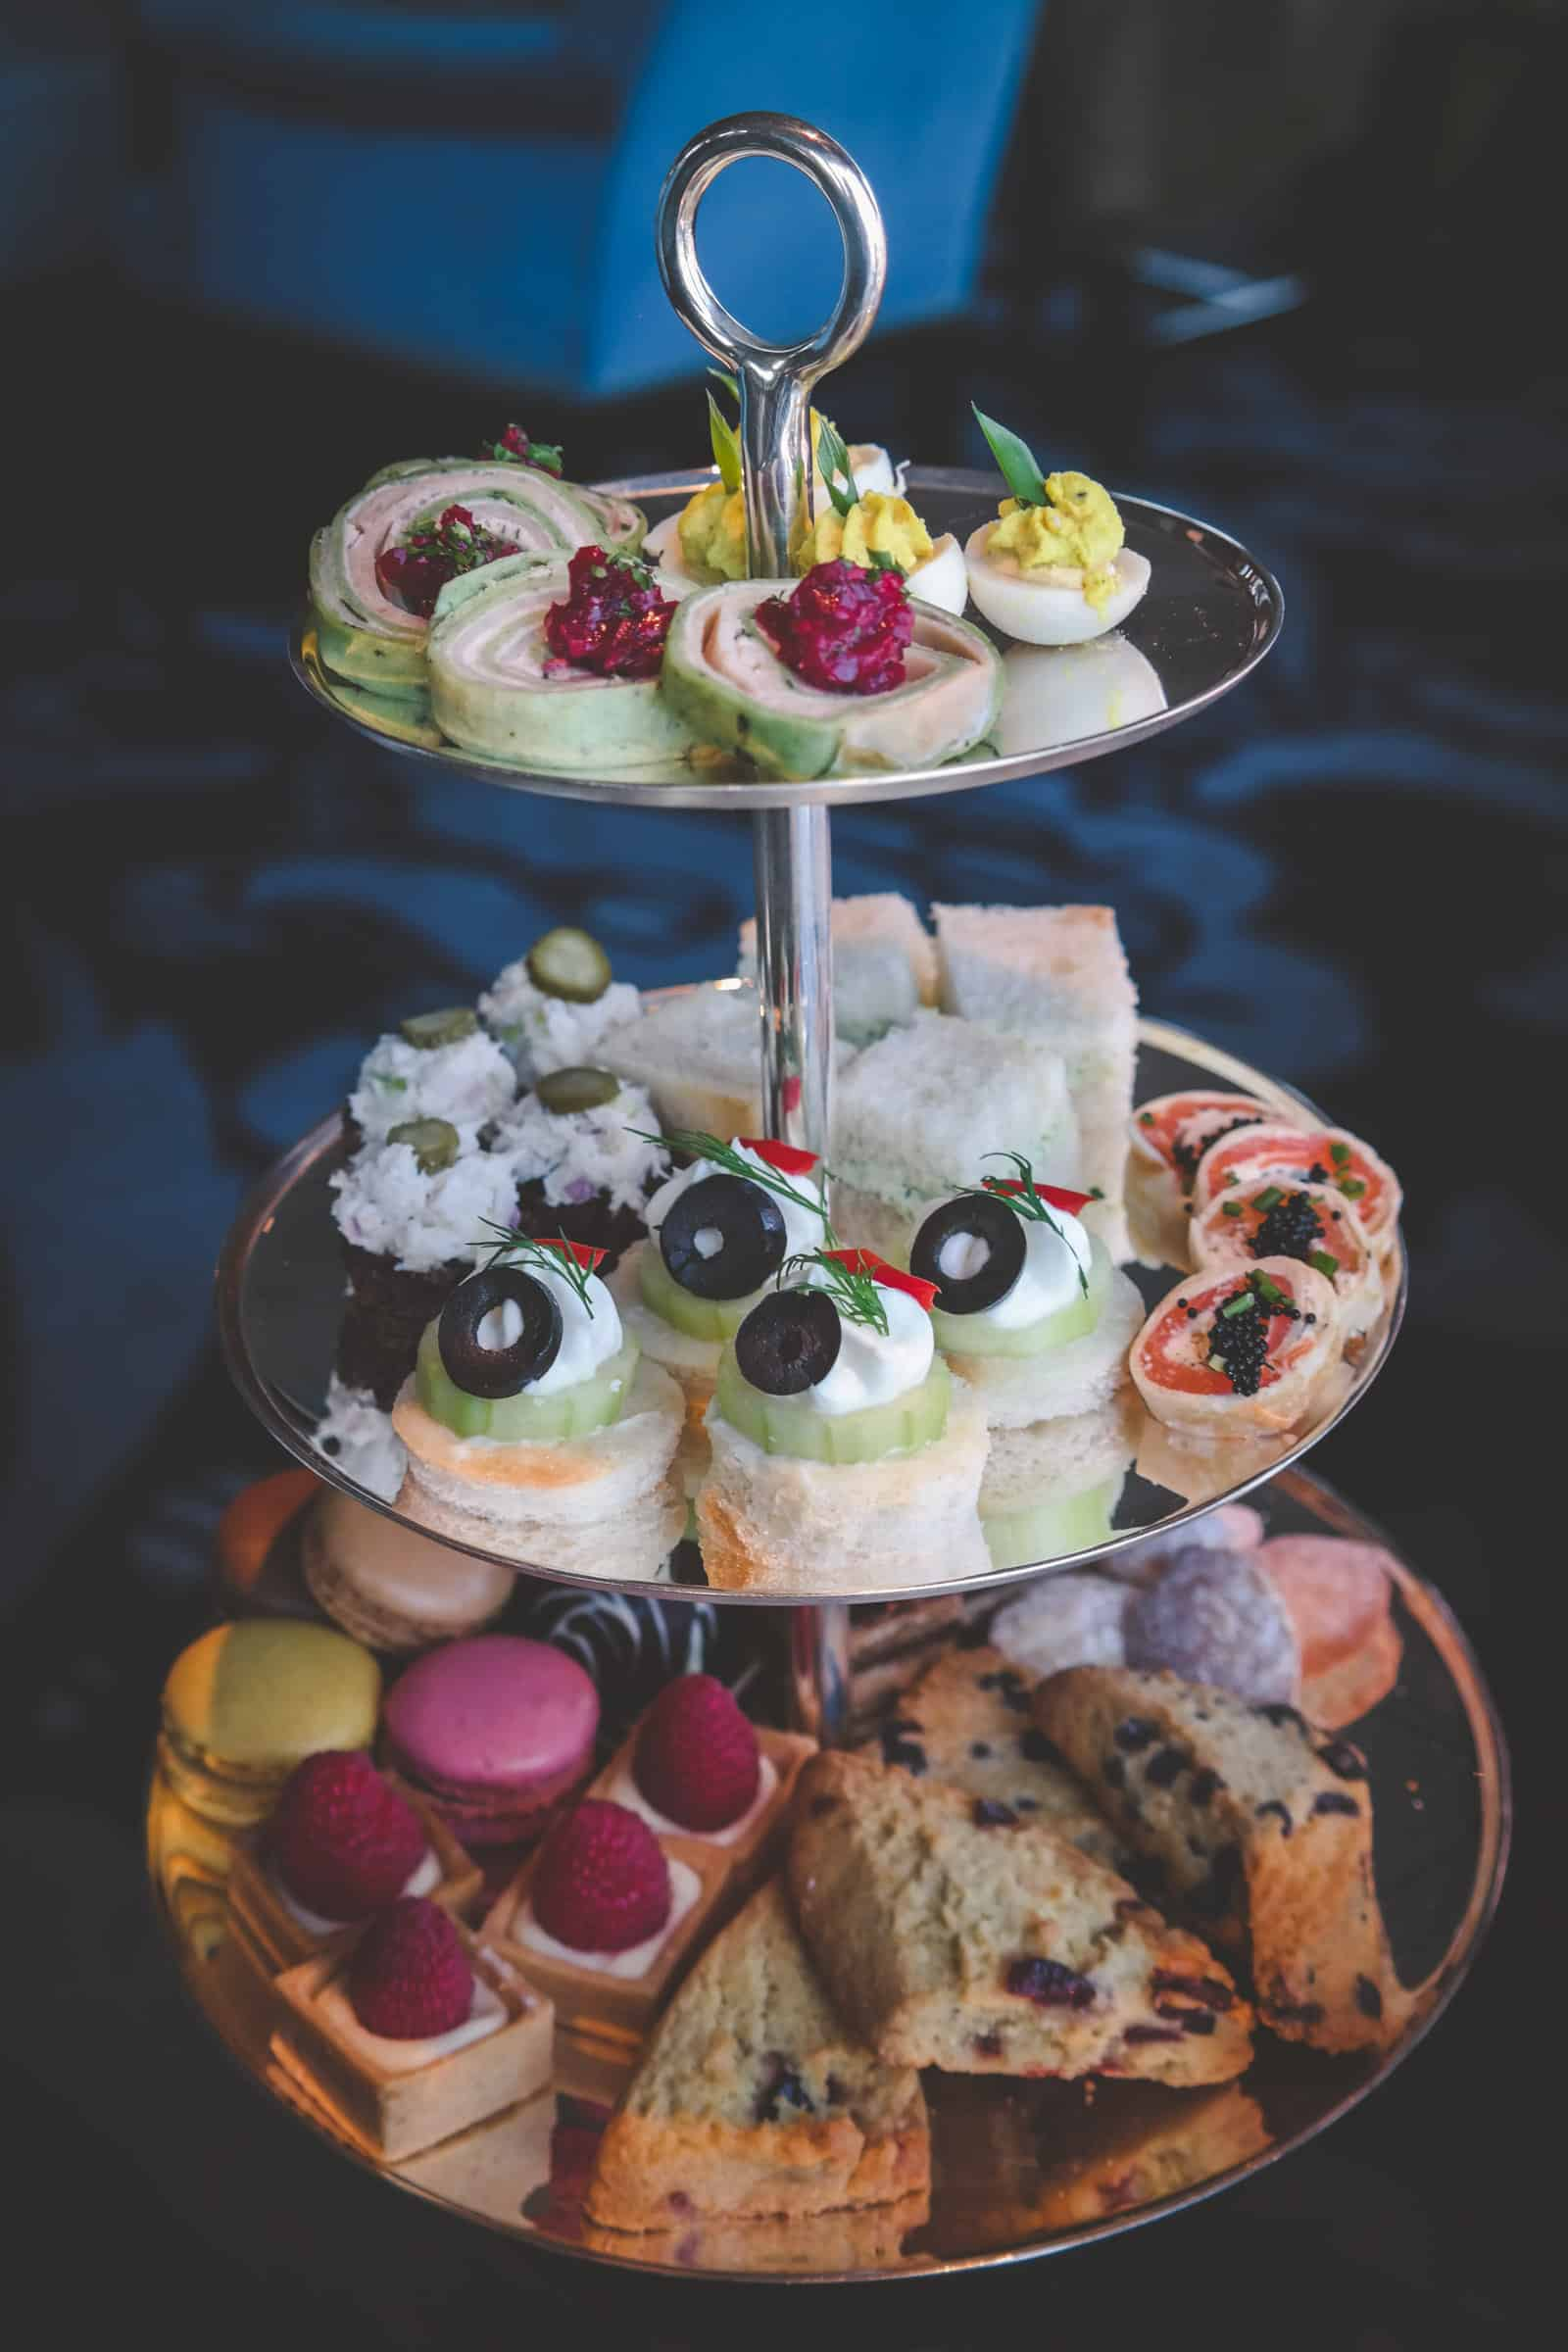 Afternoon tea sandwiches and pastries at the Pfister